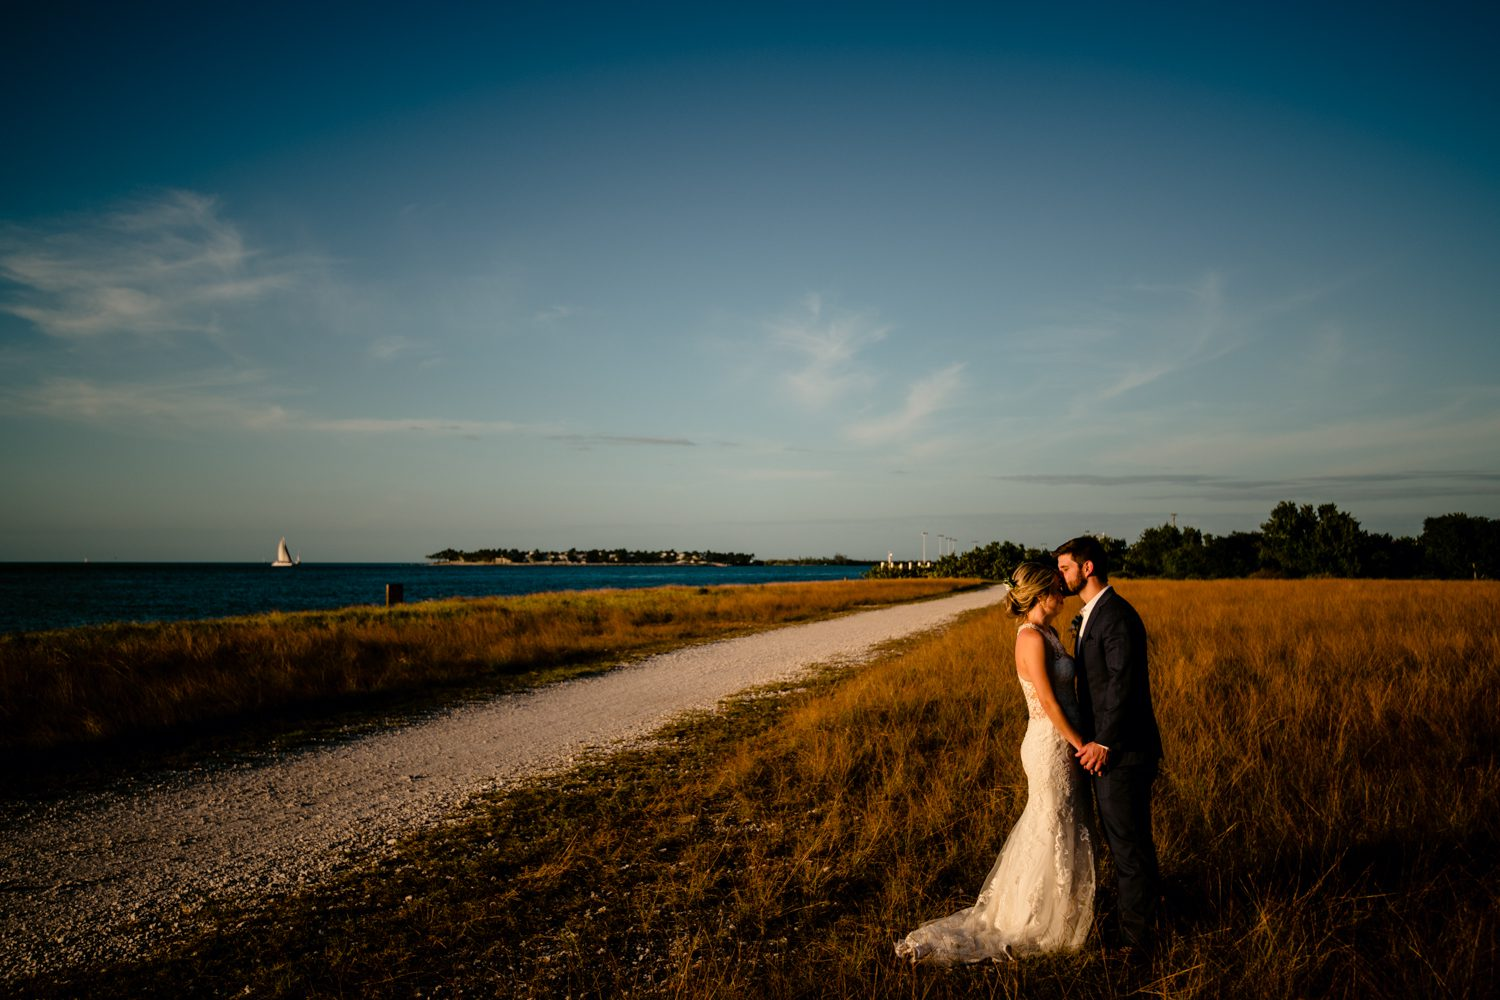 Newlyweds embracing in an open field at fort zachary taylor